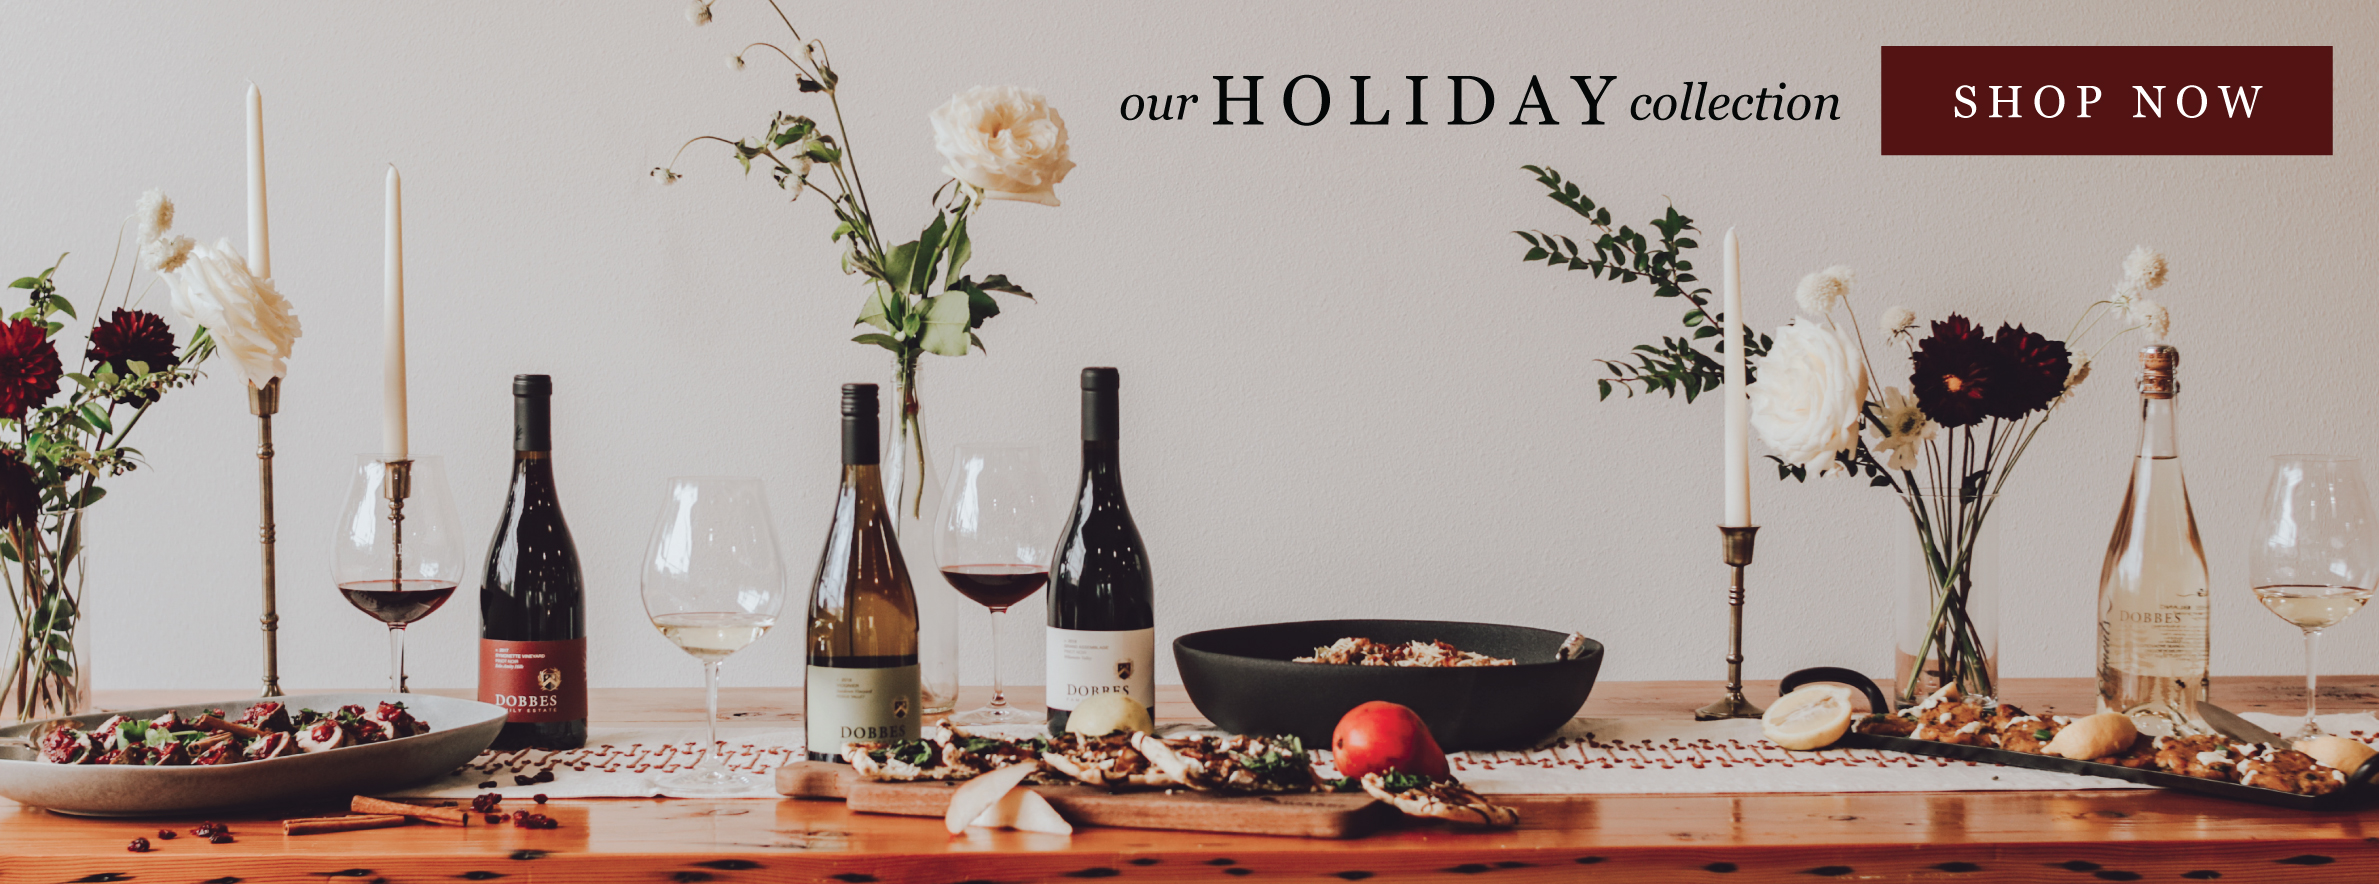 banner-holiday2020